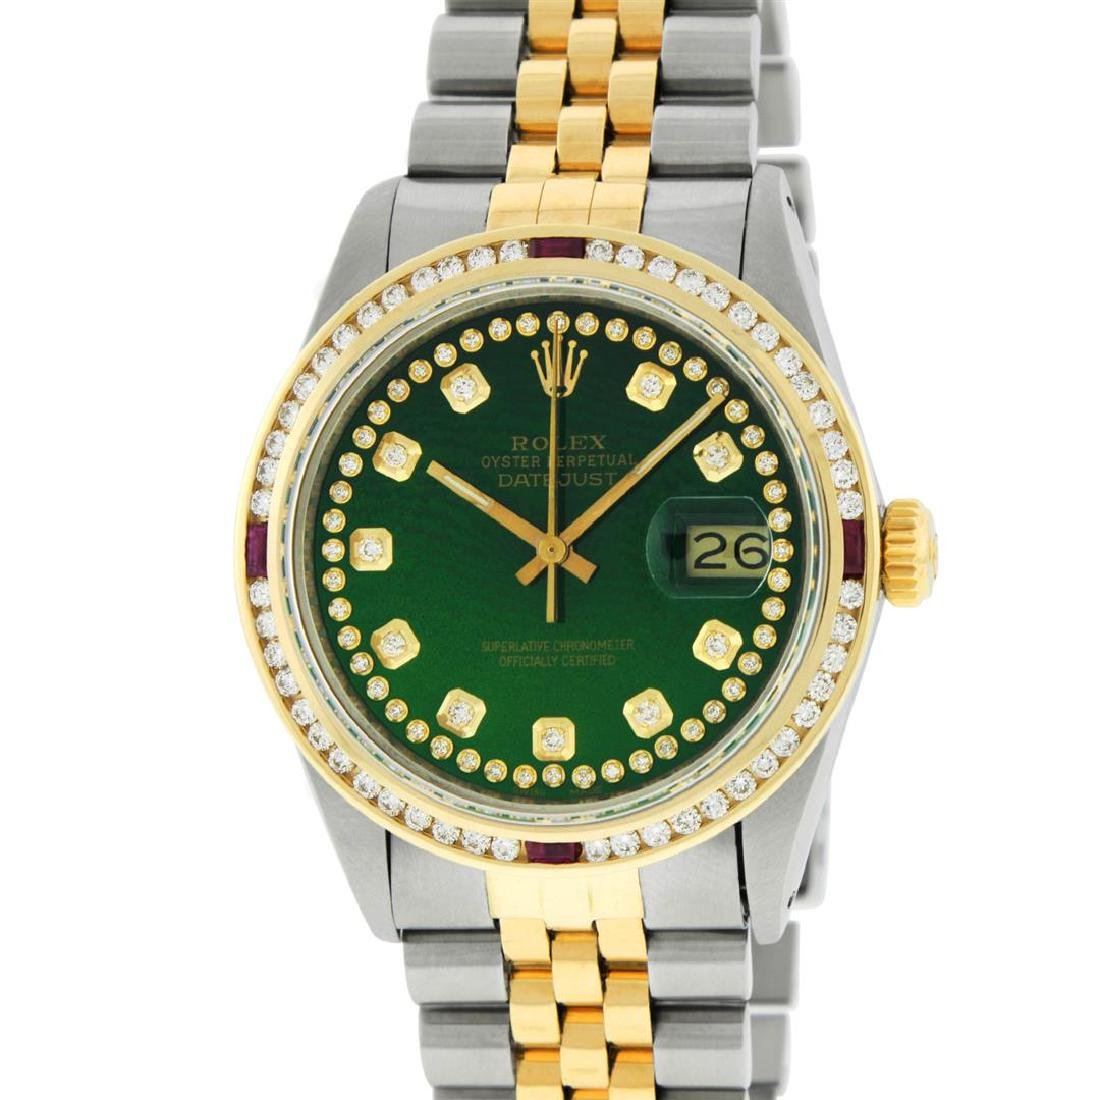 Rolex Men's Two Tone 14K Green String Diamond & Ruby - 2